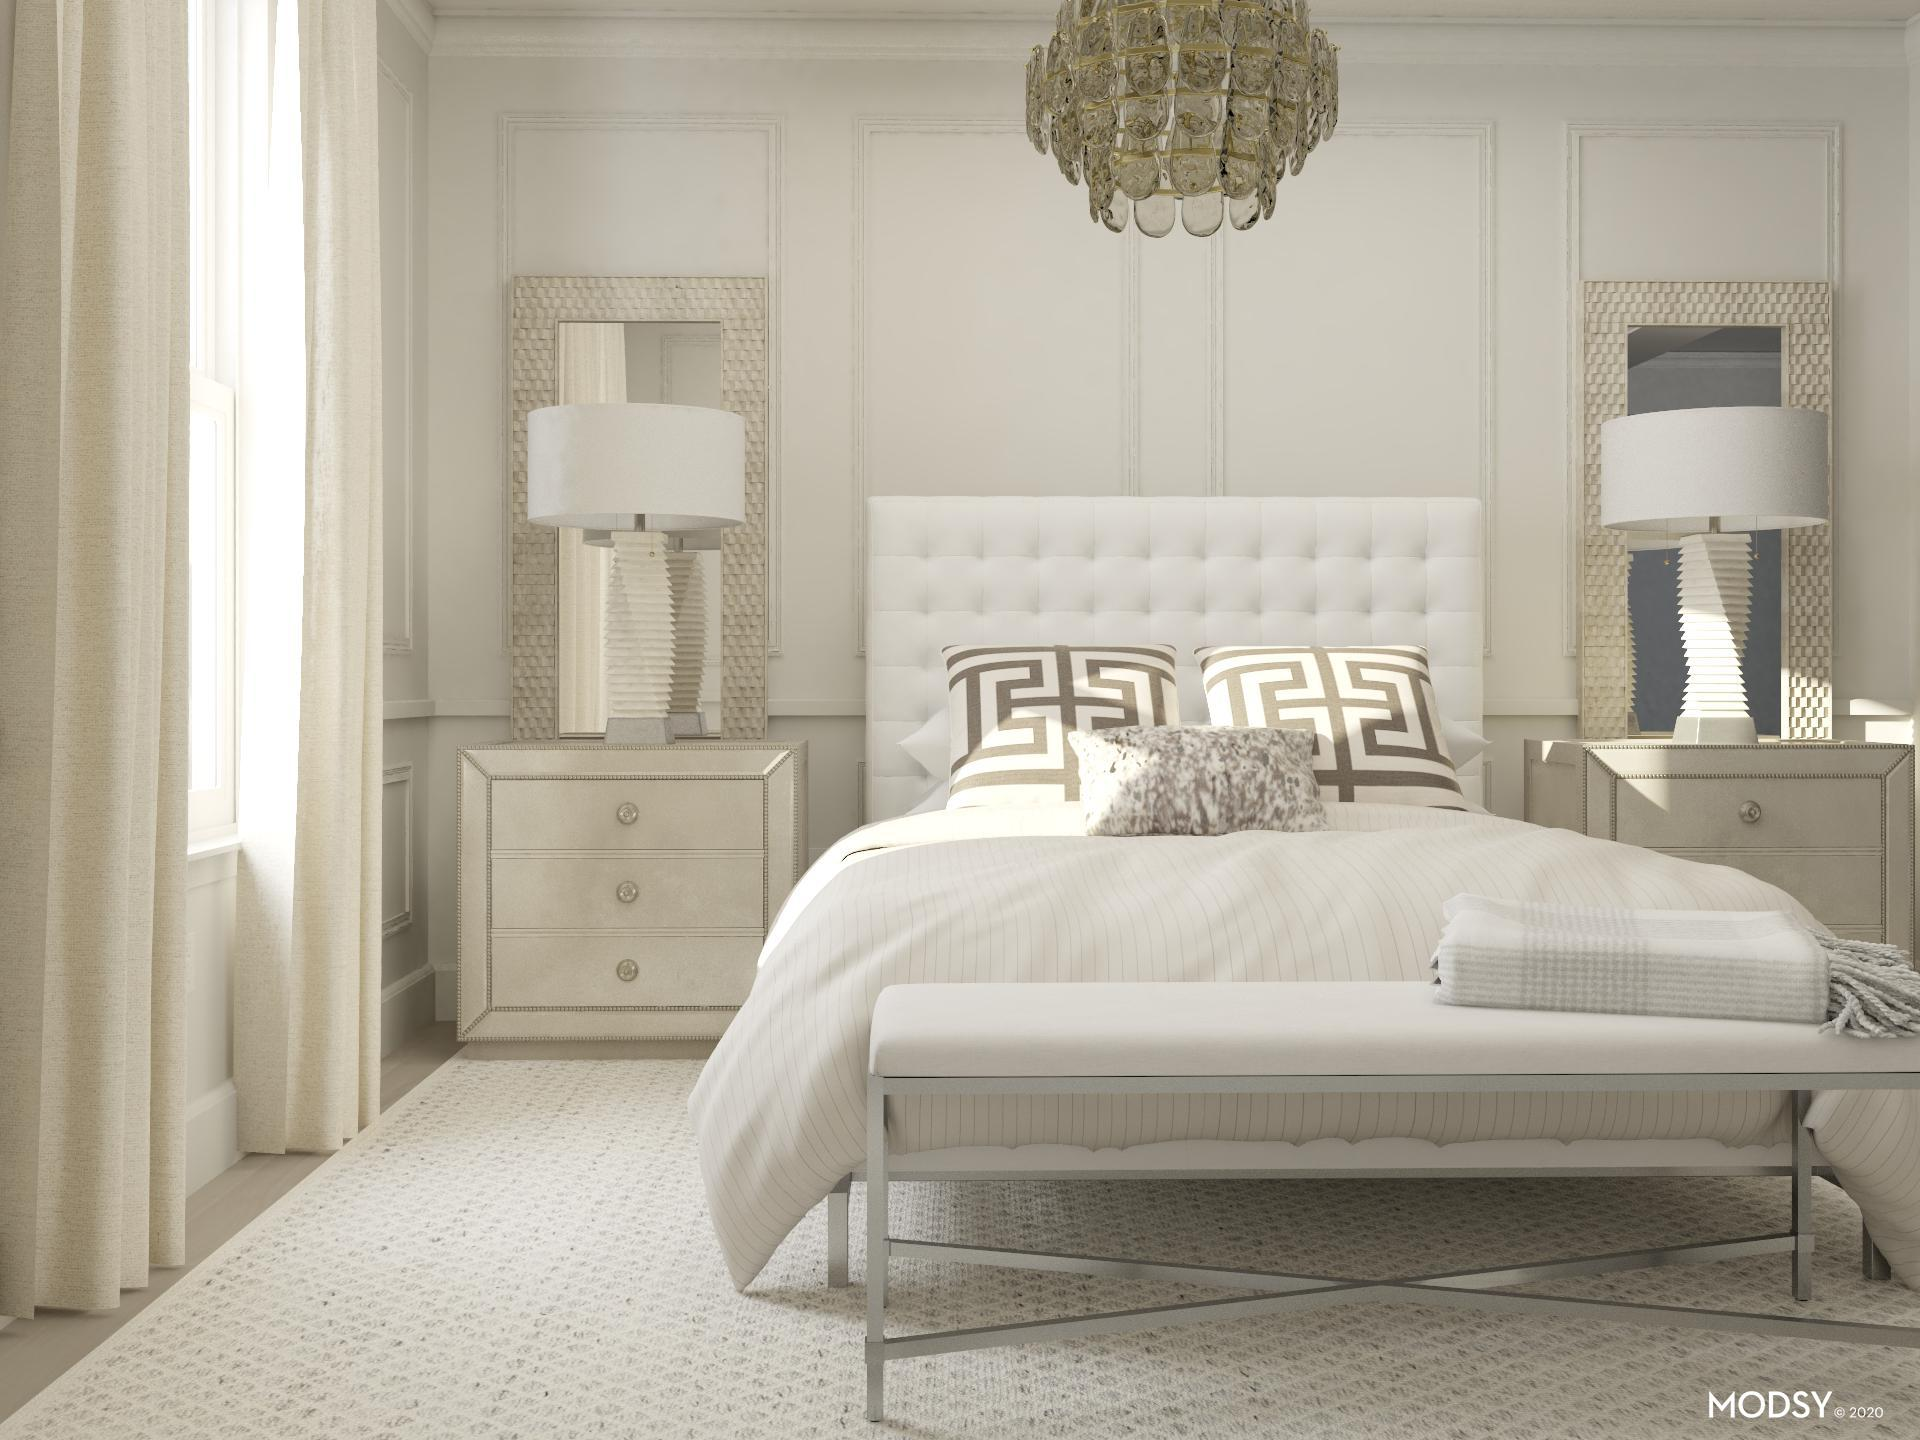 Glam Bedroom Design Ideas And Styles From Modsy Designers